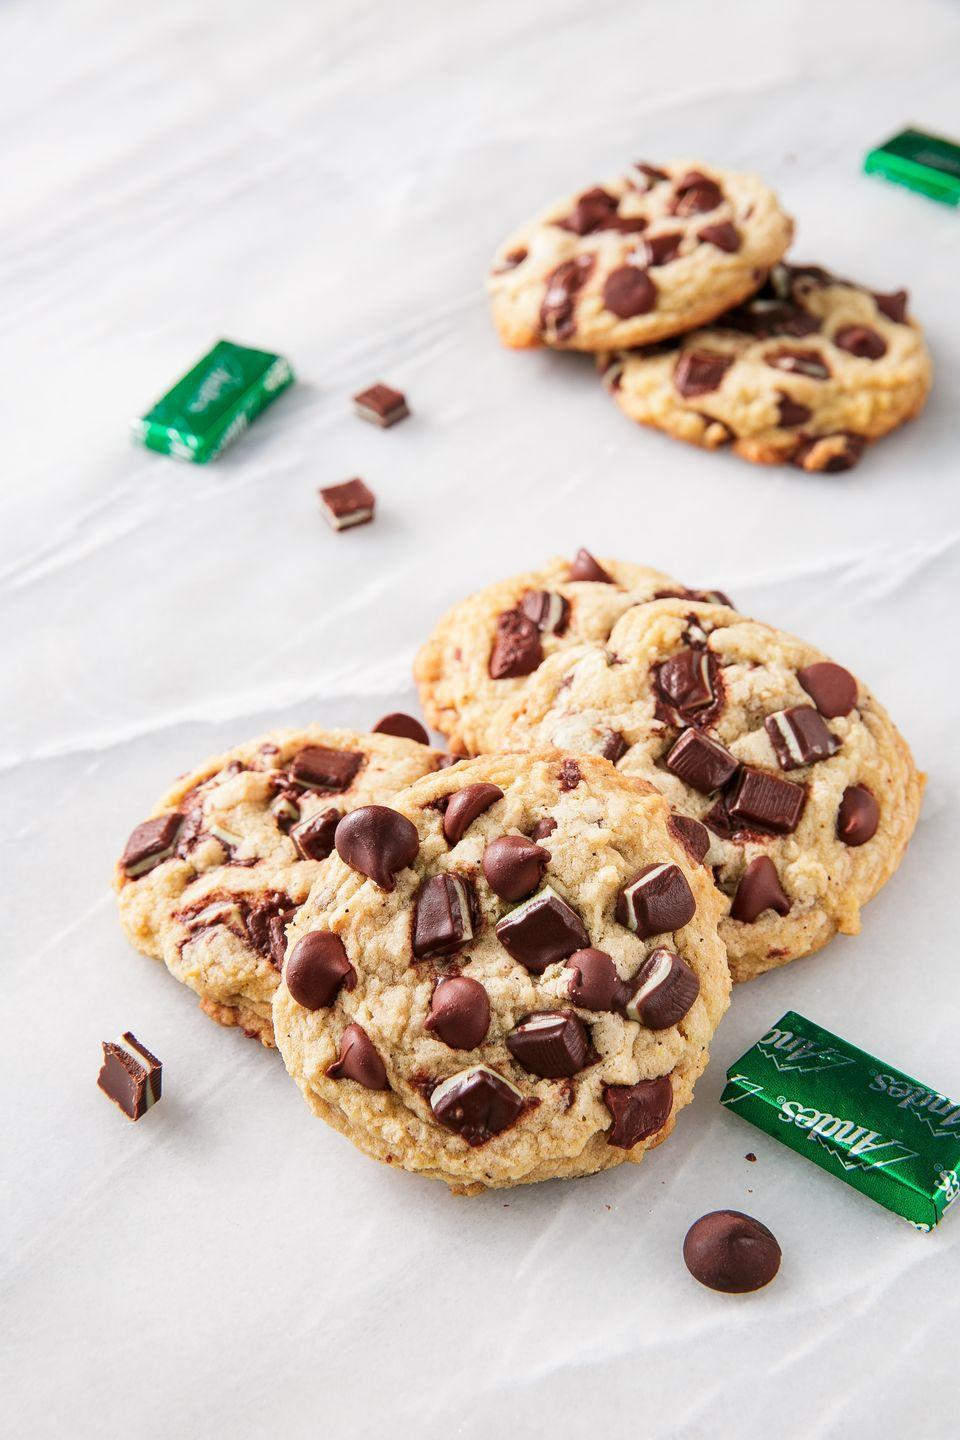 """<p>Espresso powder is the secret ingredient here...don't skip it!</p><p>Get the recipe from <a href=""""https://www.delish.com/holiday-recipes/christmas/a25440155/andes-chip-cookies-recipe/"""" rel=""""nofollow noopener"""" target=""""_blank"""" data-ylk=""""slk:Delish"""" class=""""link rapid-noclick-resp"""">Delish</a>.</p>"""